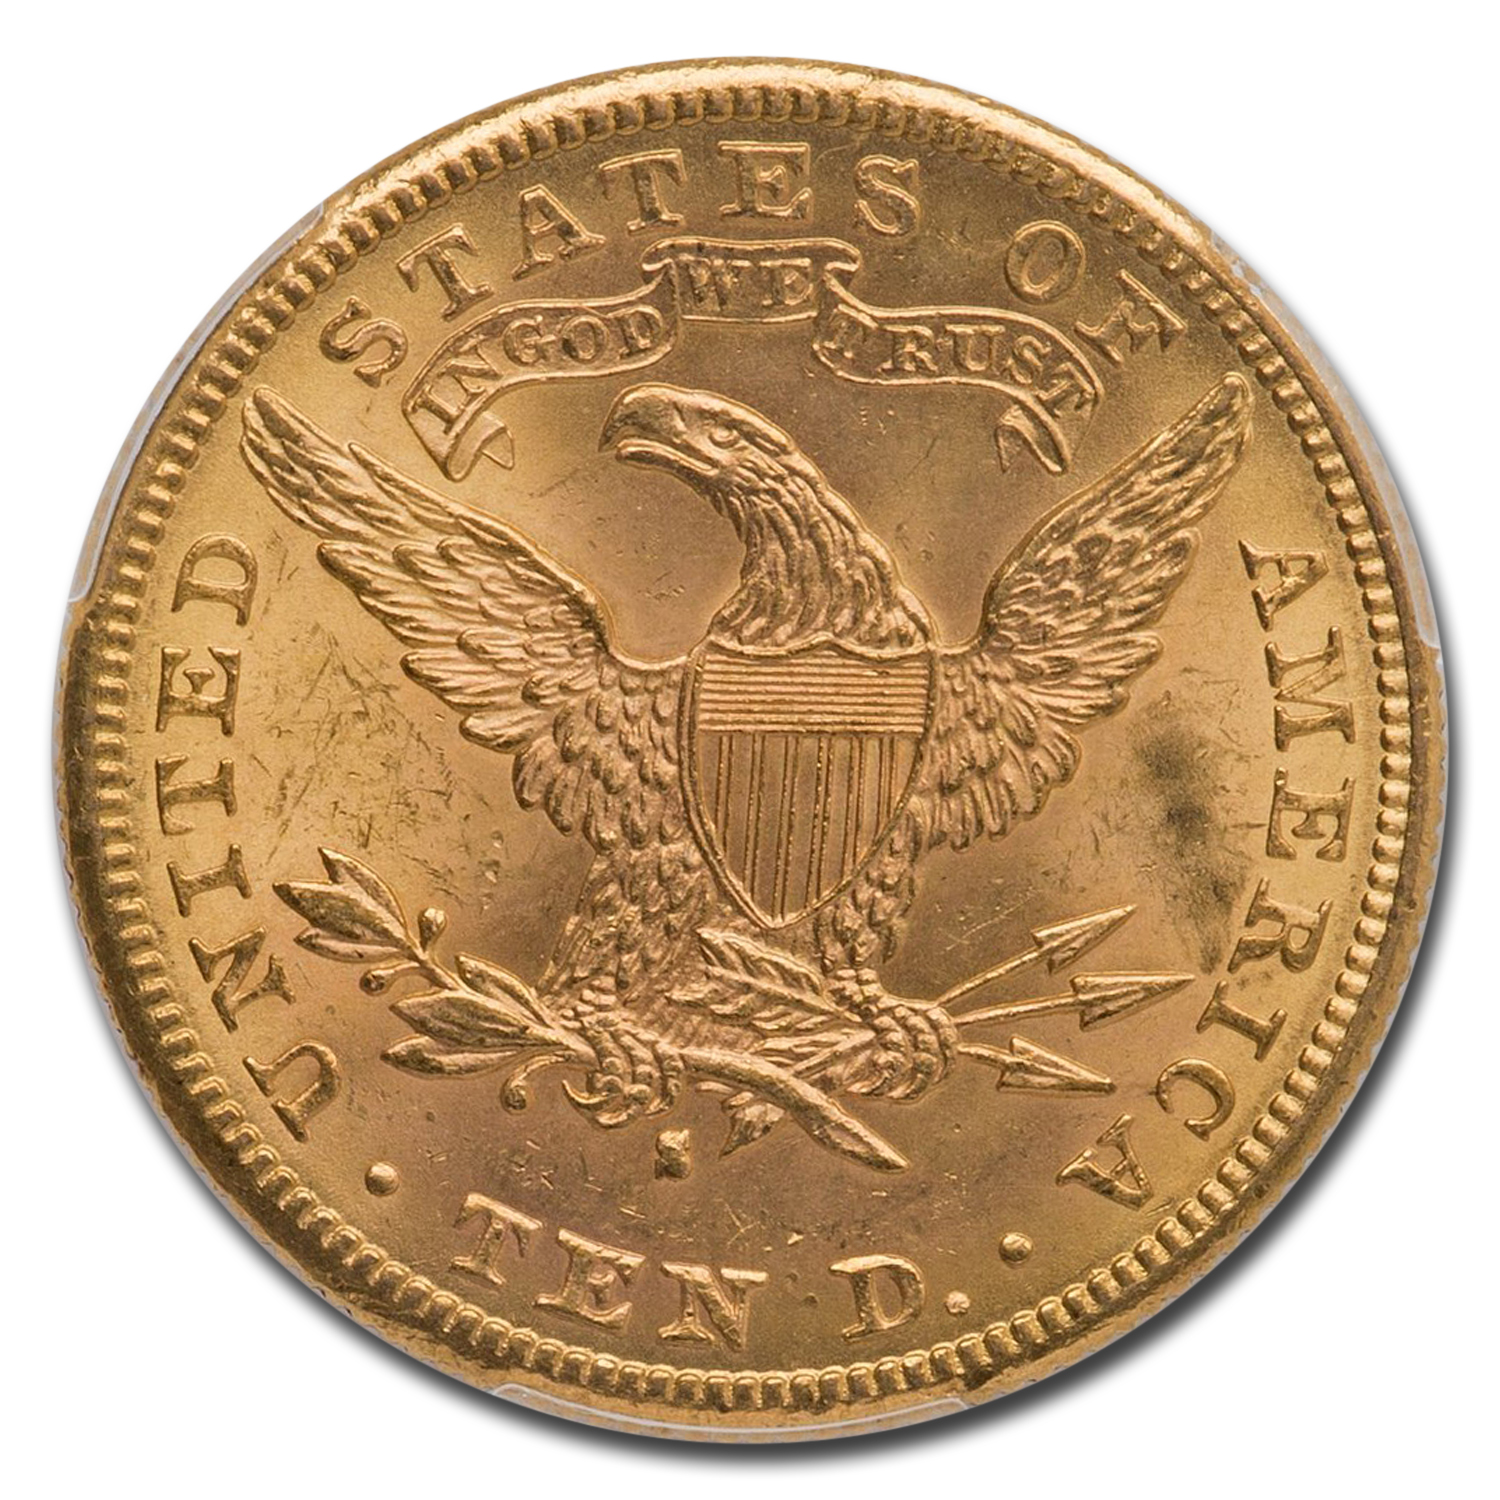 1886-S $10 Liberty Gold Eagle - MS-63 PCGS